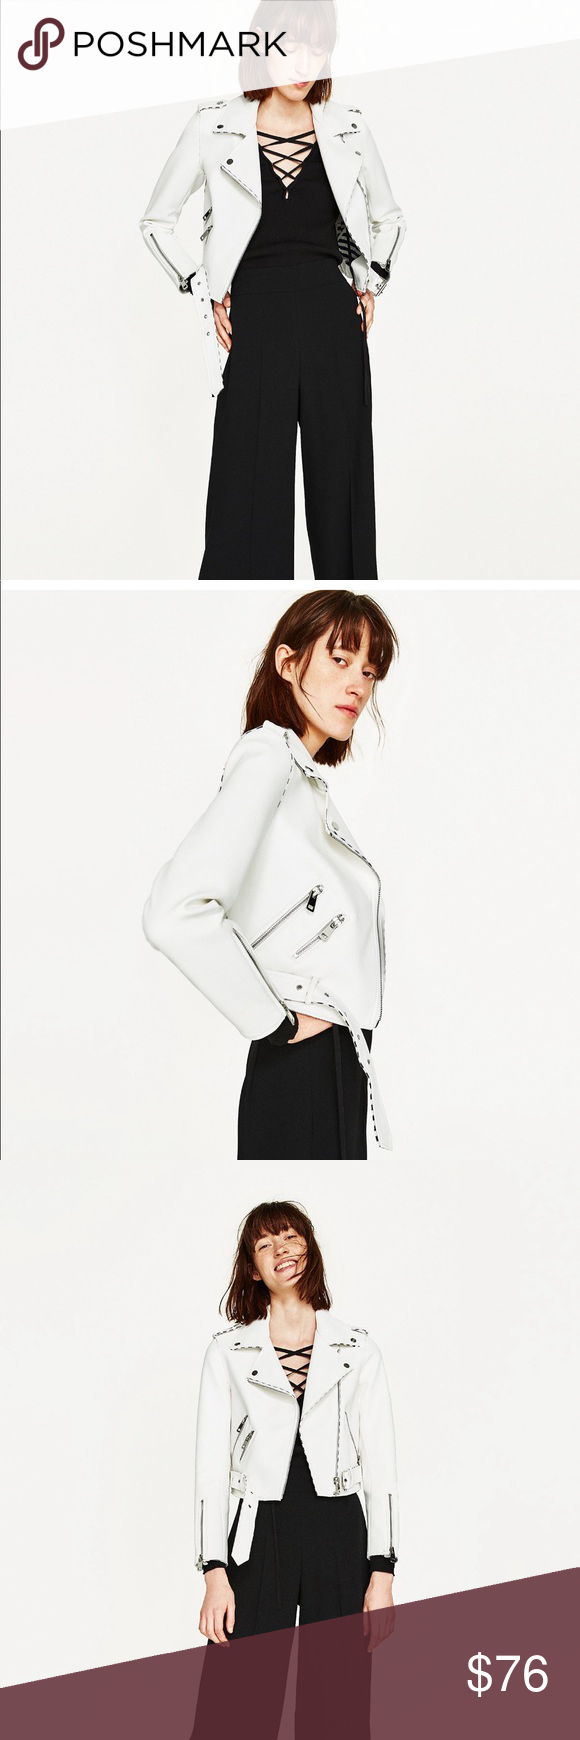 Zara White Faux Leather Moto Biker Jacket Sz L White